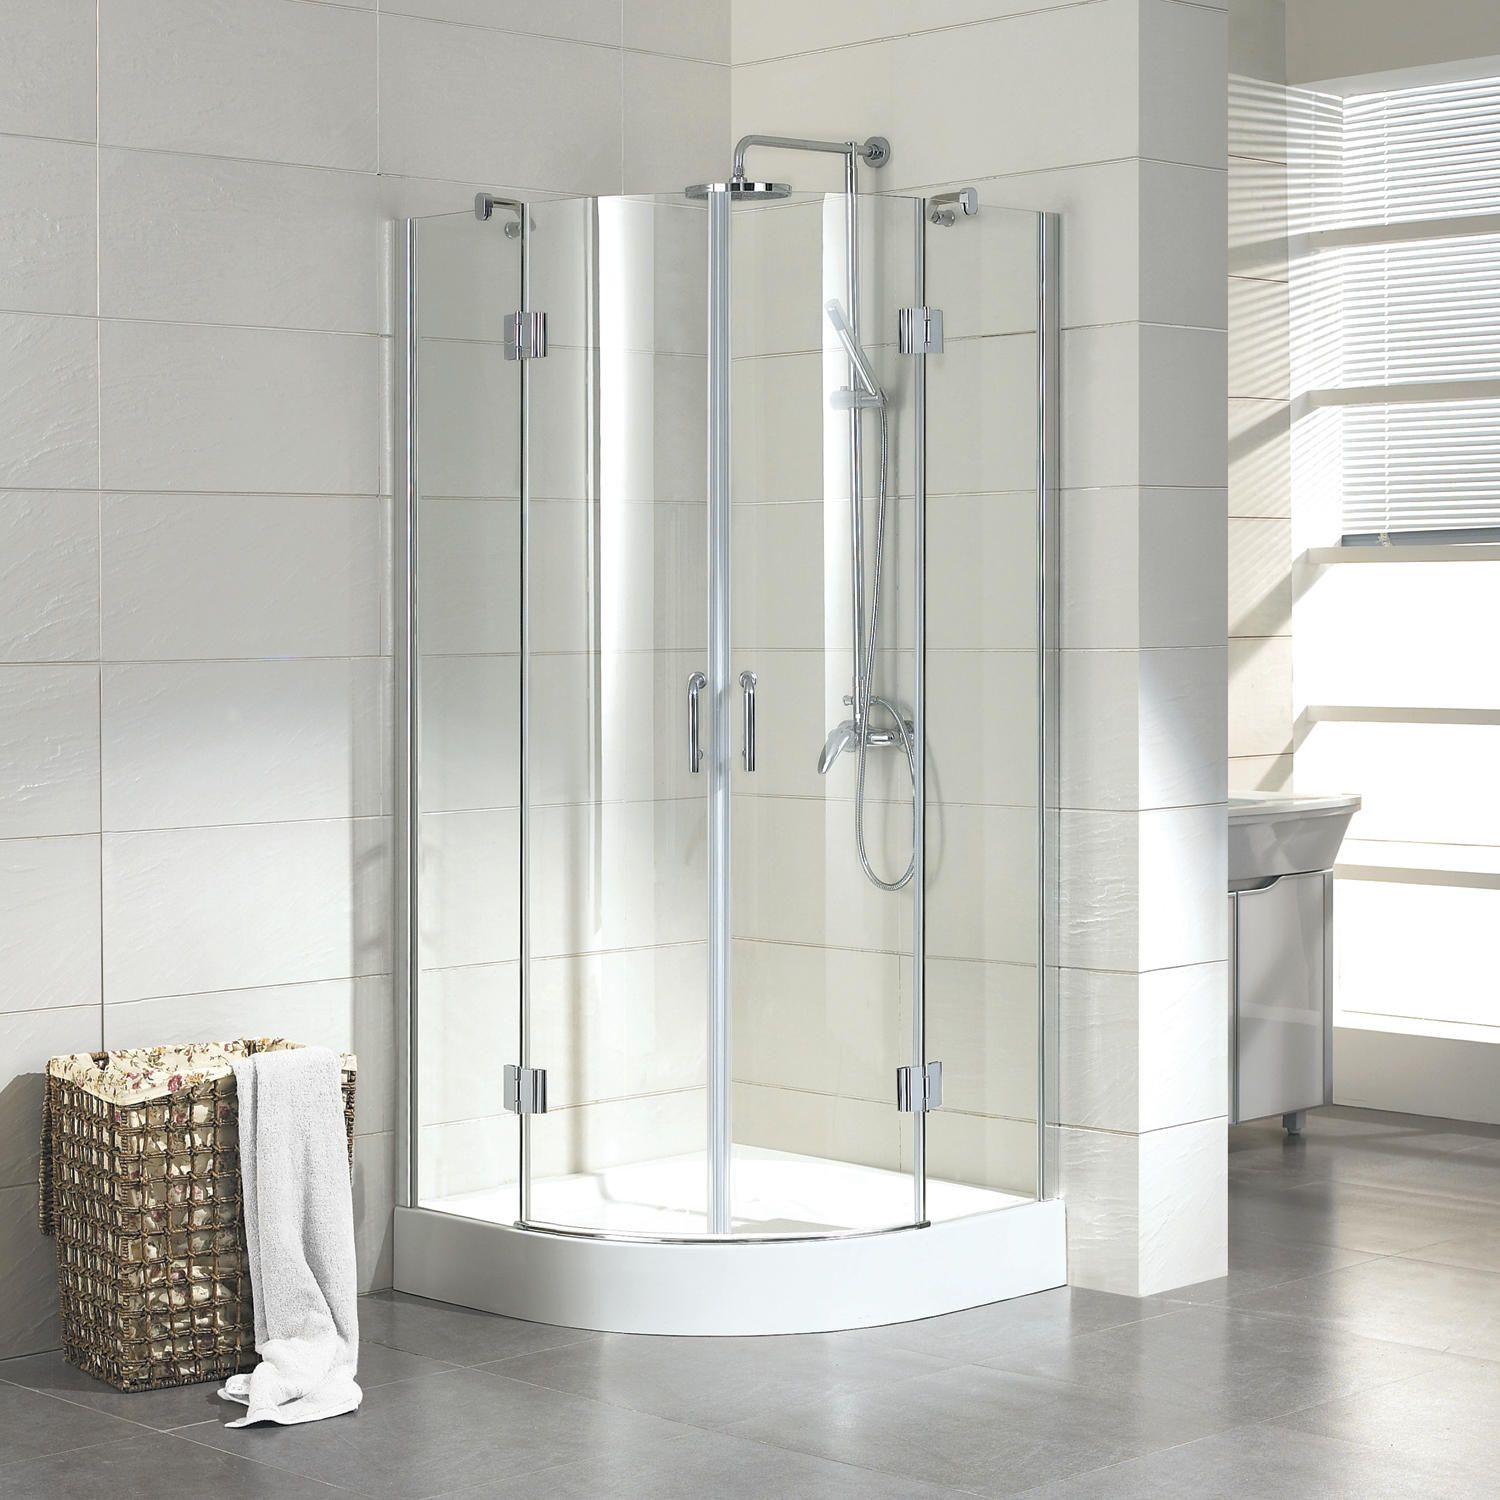 36 X 36 Mauny Round Corner Shower Enclosure With Tray